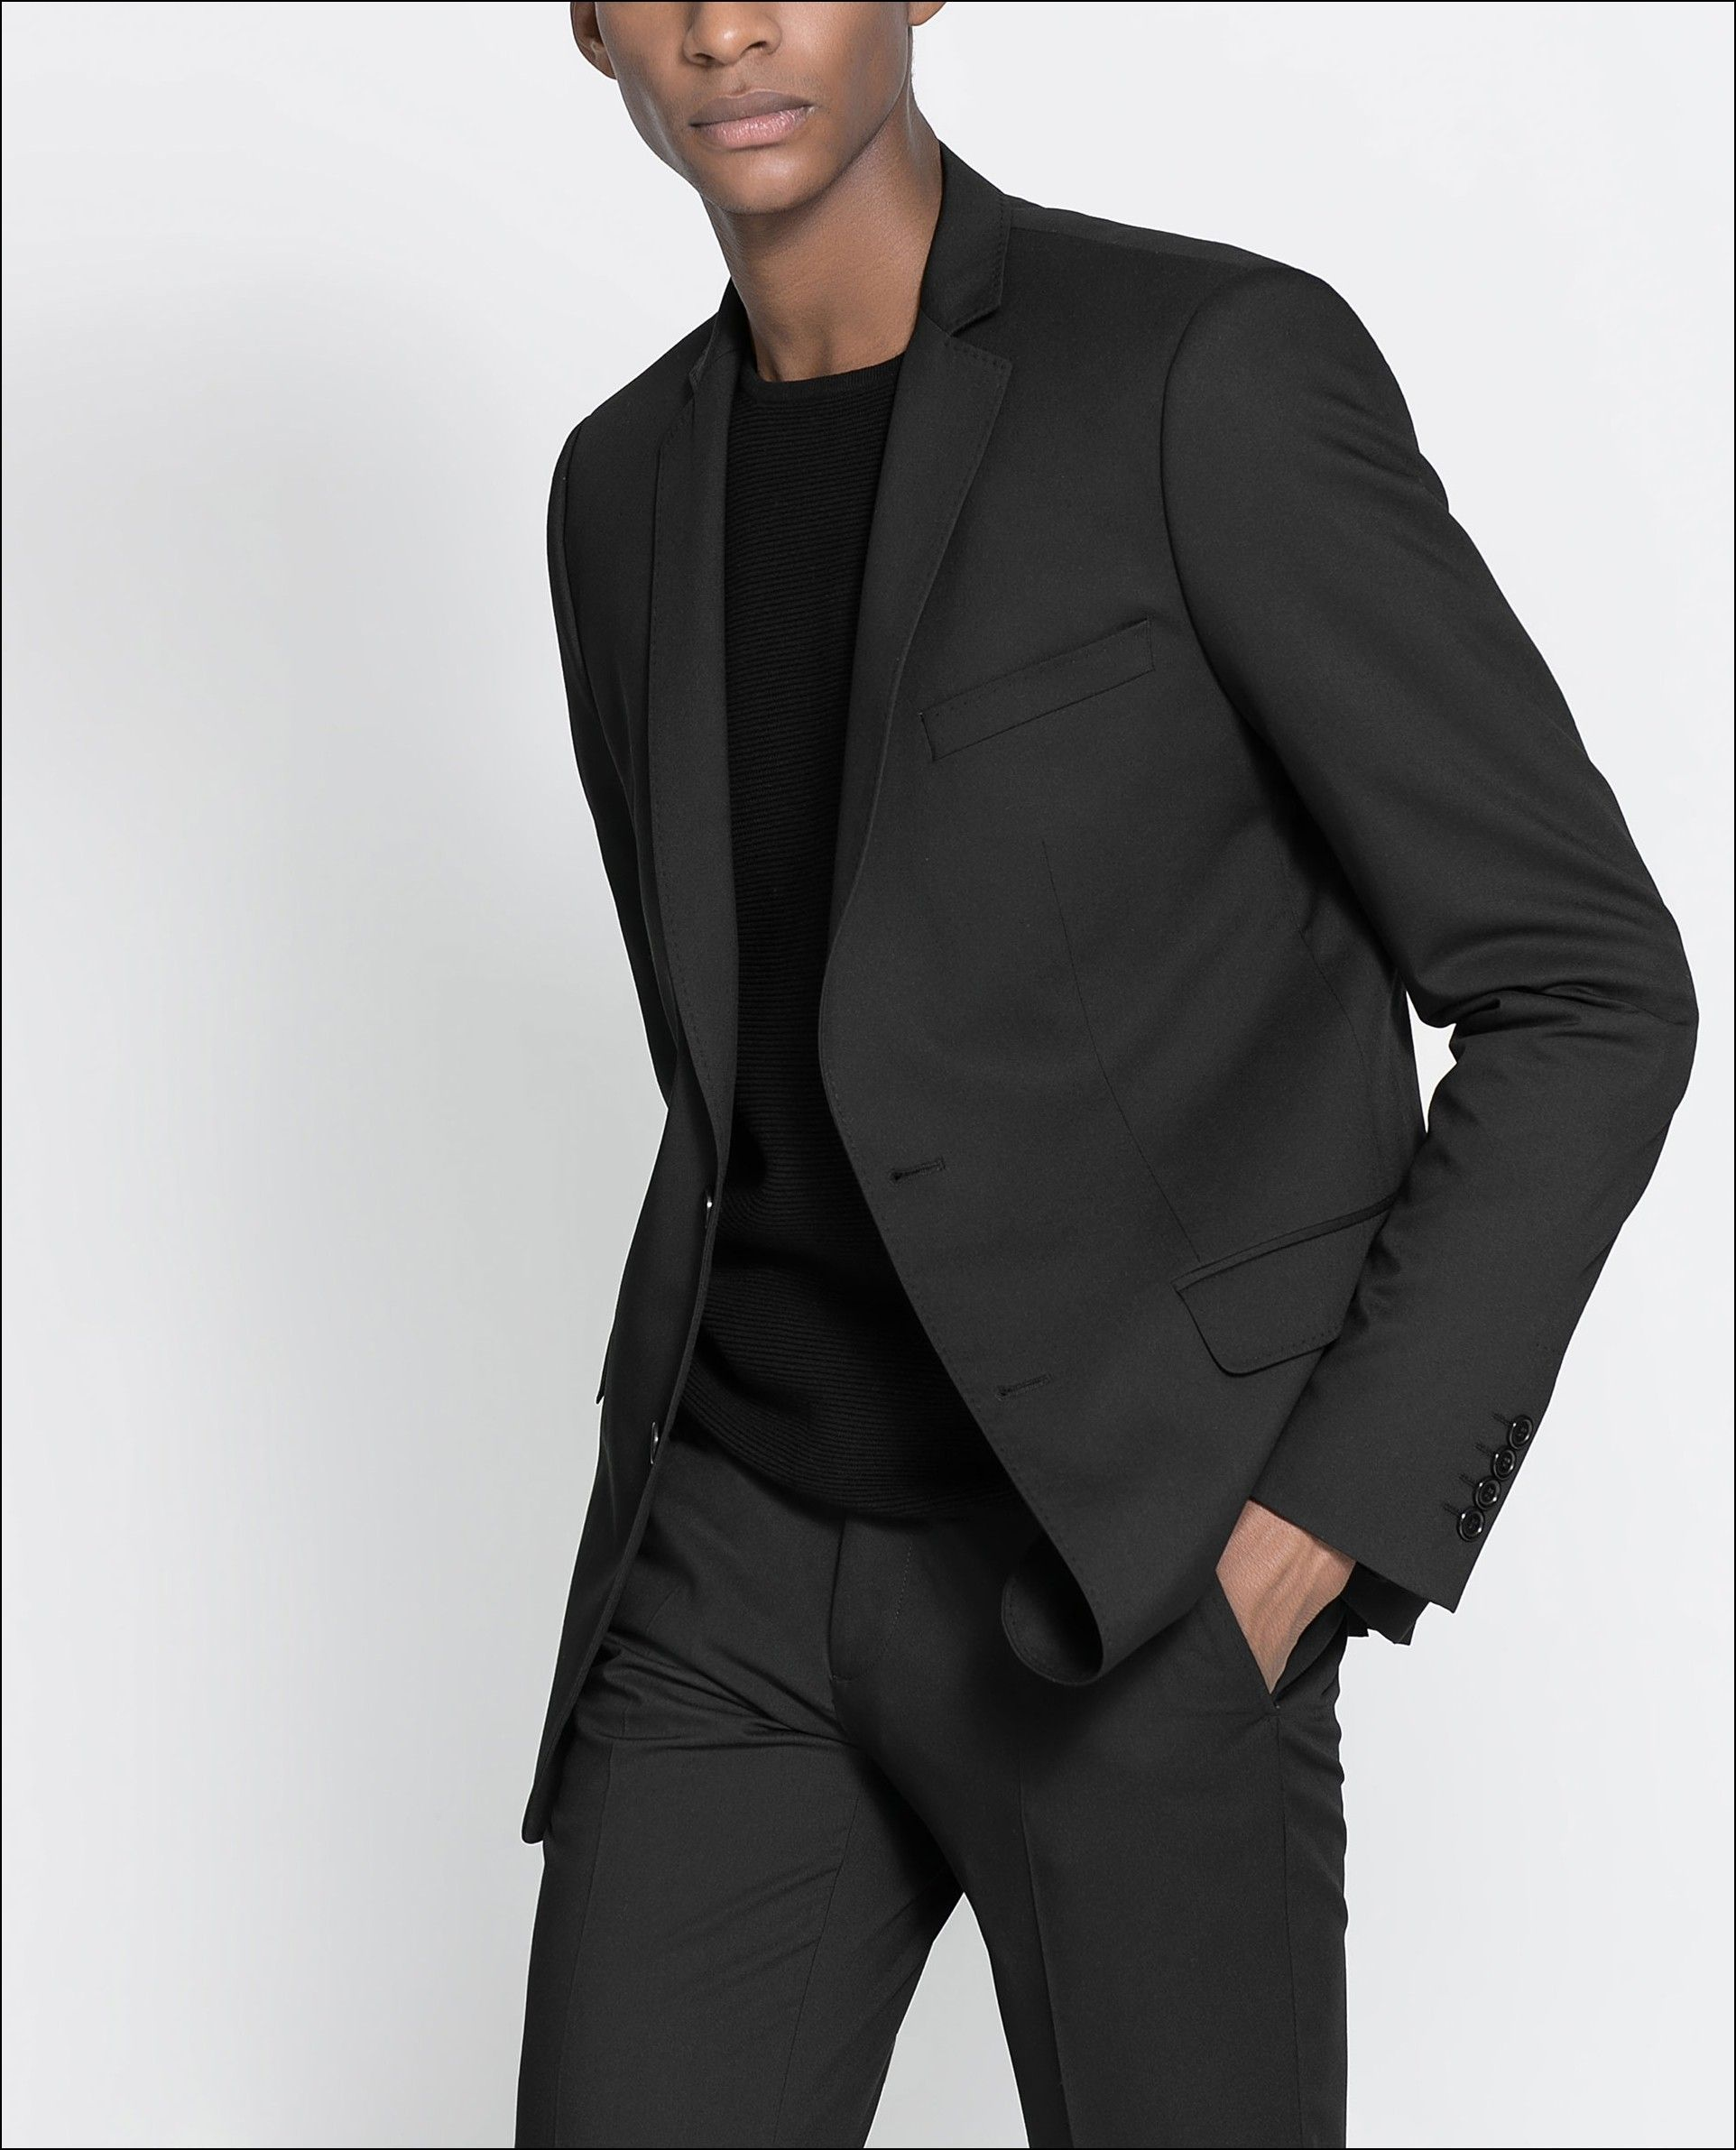 Grey suit with black t shirt google search